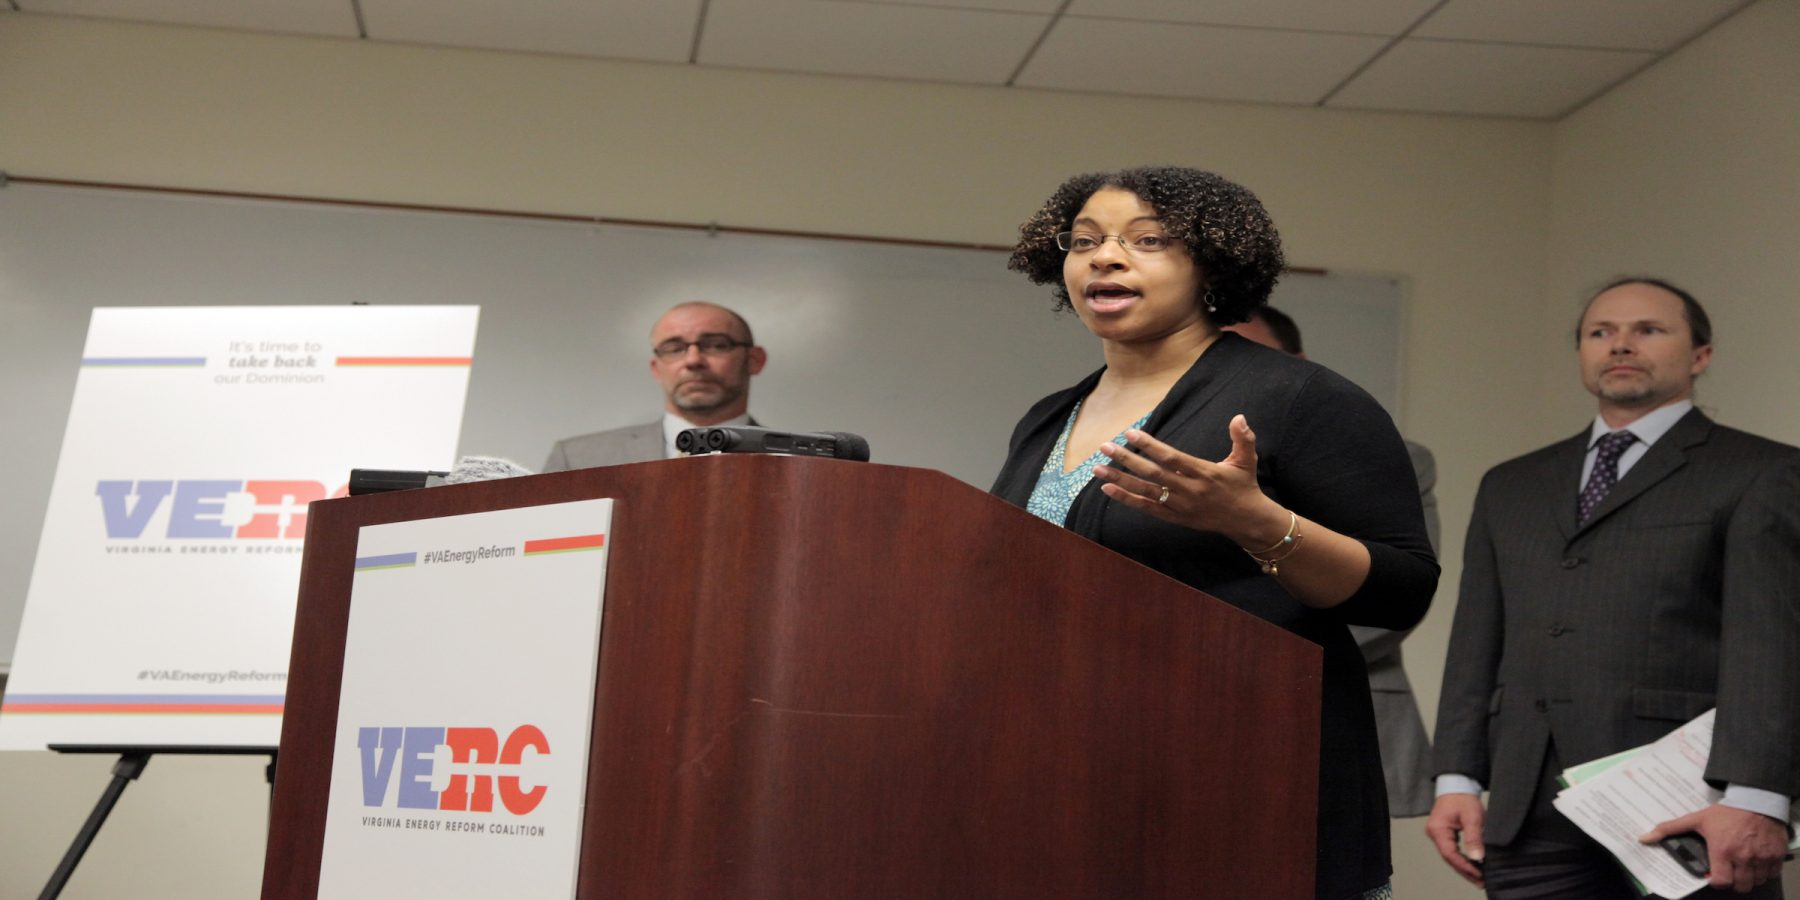 Dana Wiggins of the Virginia Poverty Law Center speaks at a press conference launching the Virginia Energy Reform Coalition.